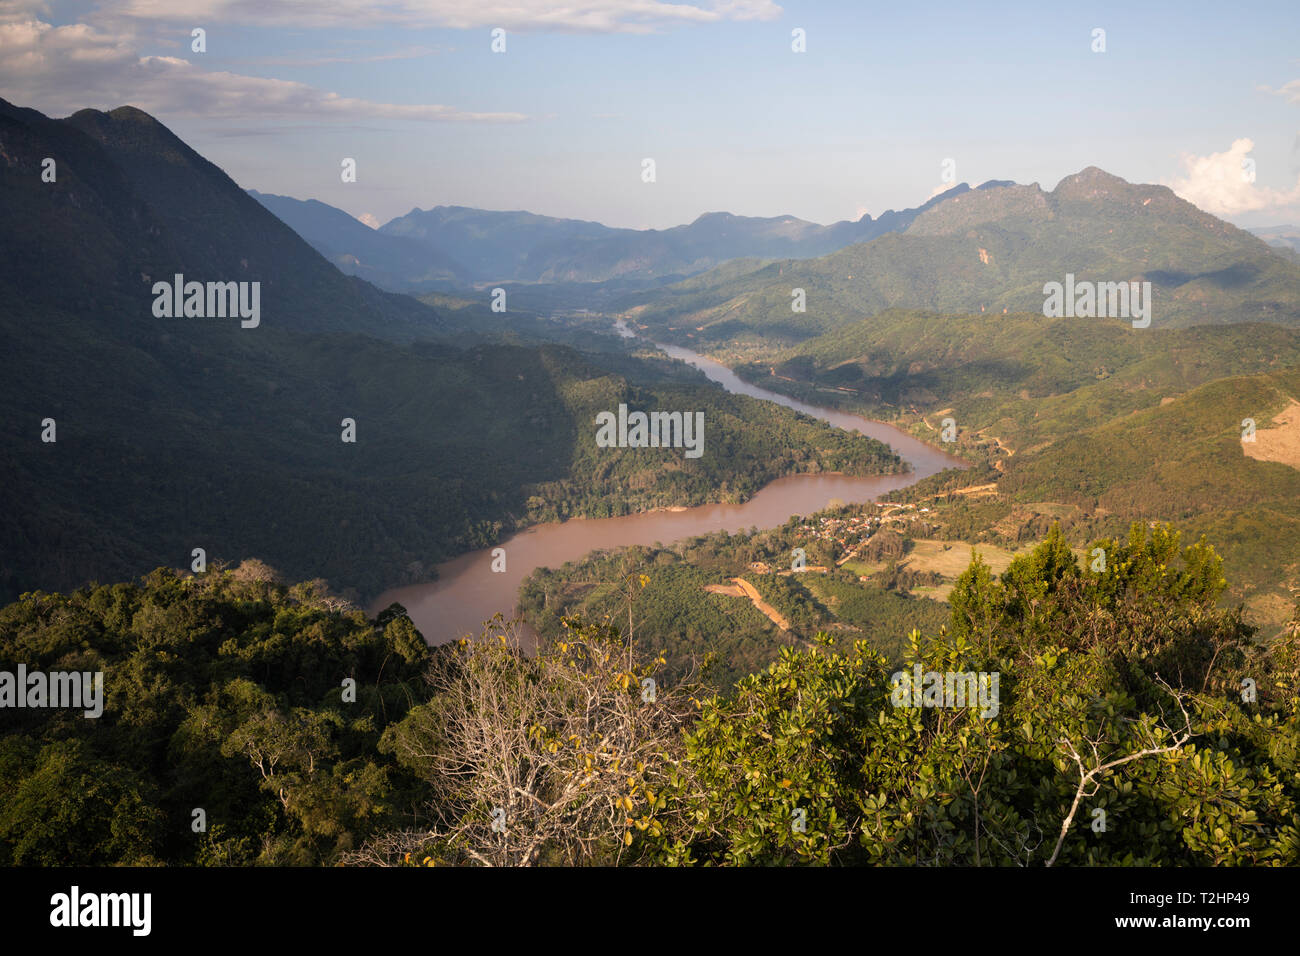 Karsk peaks and the Nam Ou River from the top of the Pha Daeng Peak Viewpoint, Nong Khiaw, Luang Prabang Province, Northern Laos, Southeast Asia Stock Photo